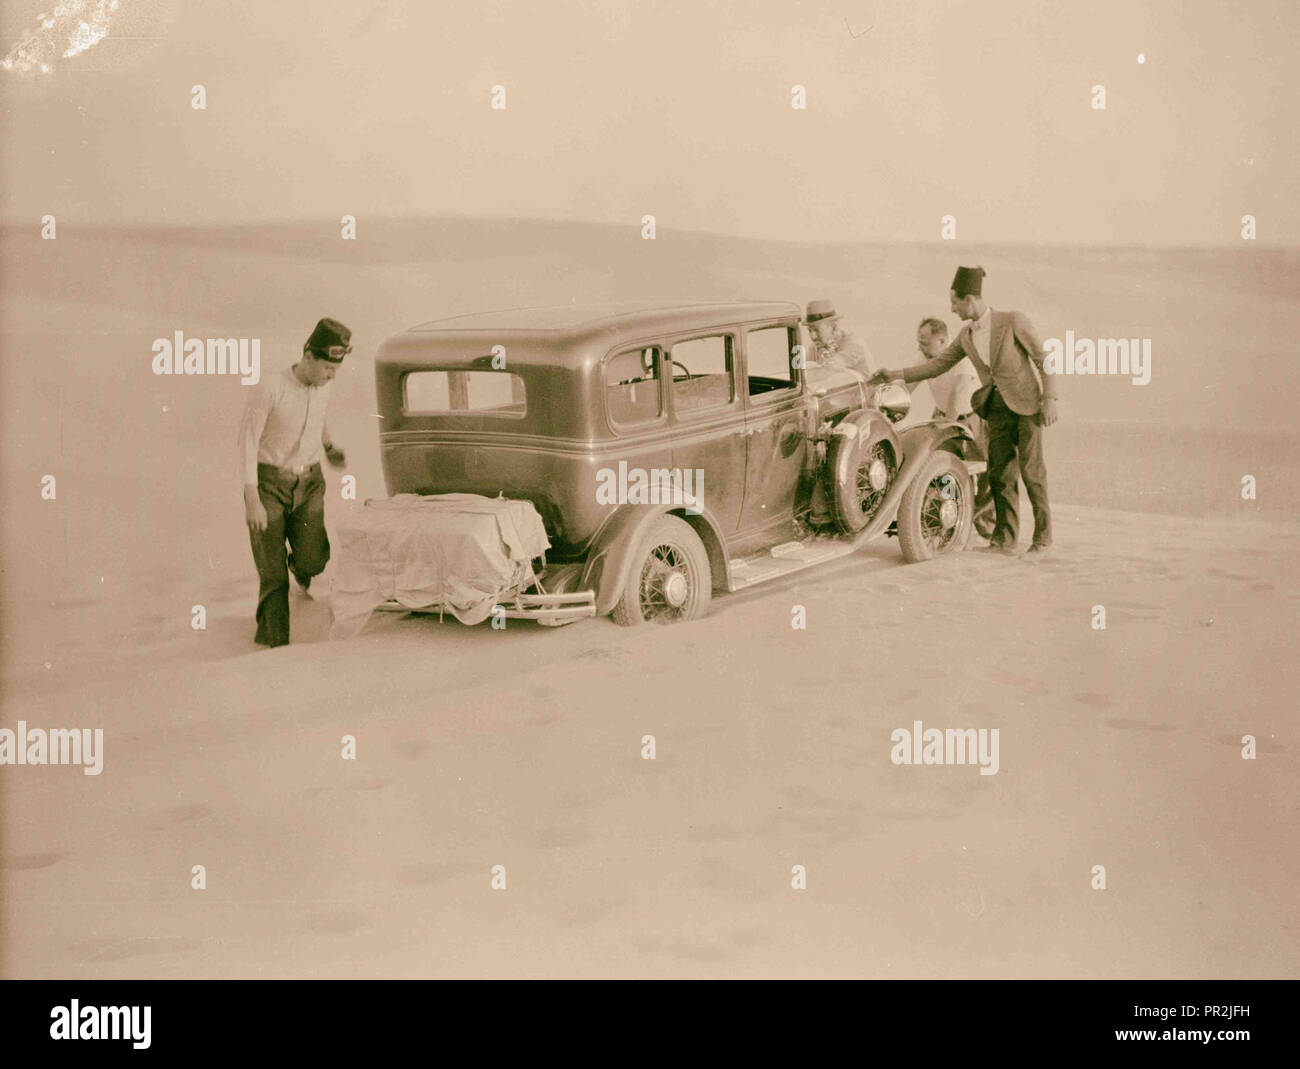 To Sinai by car Car stuck in the midst of a sand dune. Sand drifts across the road. 1920, Middle East, Israel and/or Palestine - Stock Image